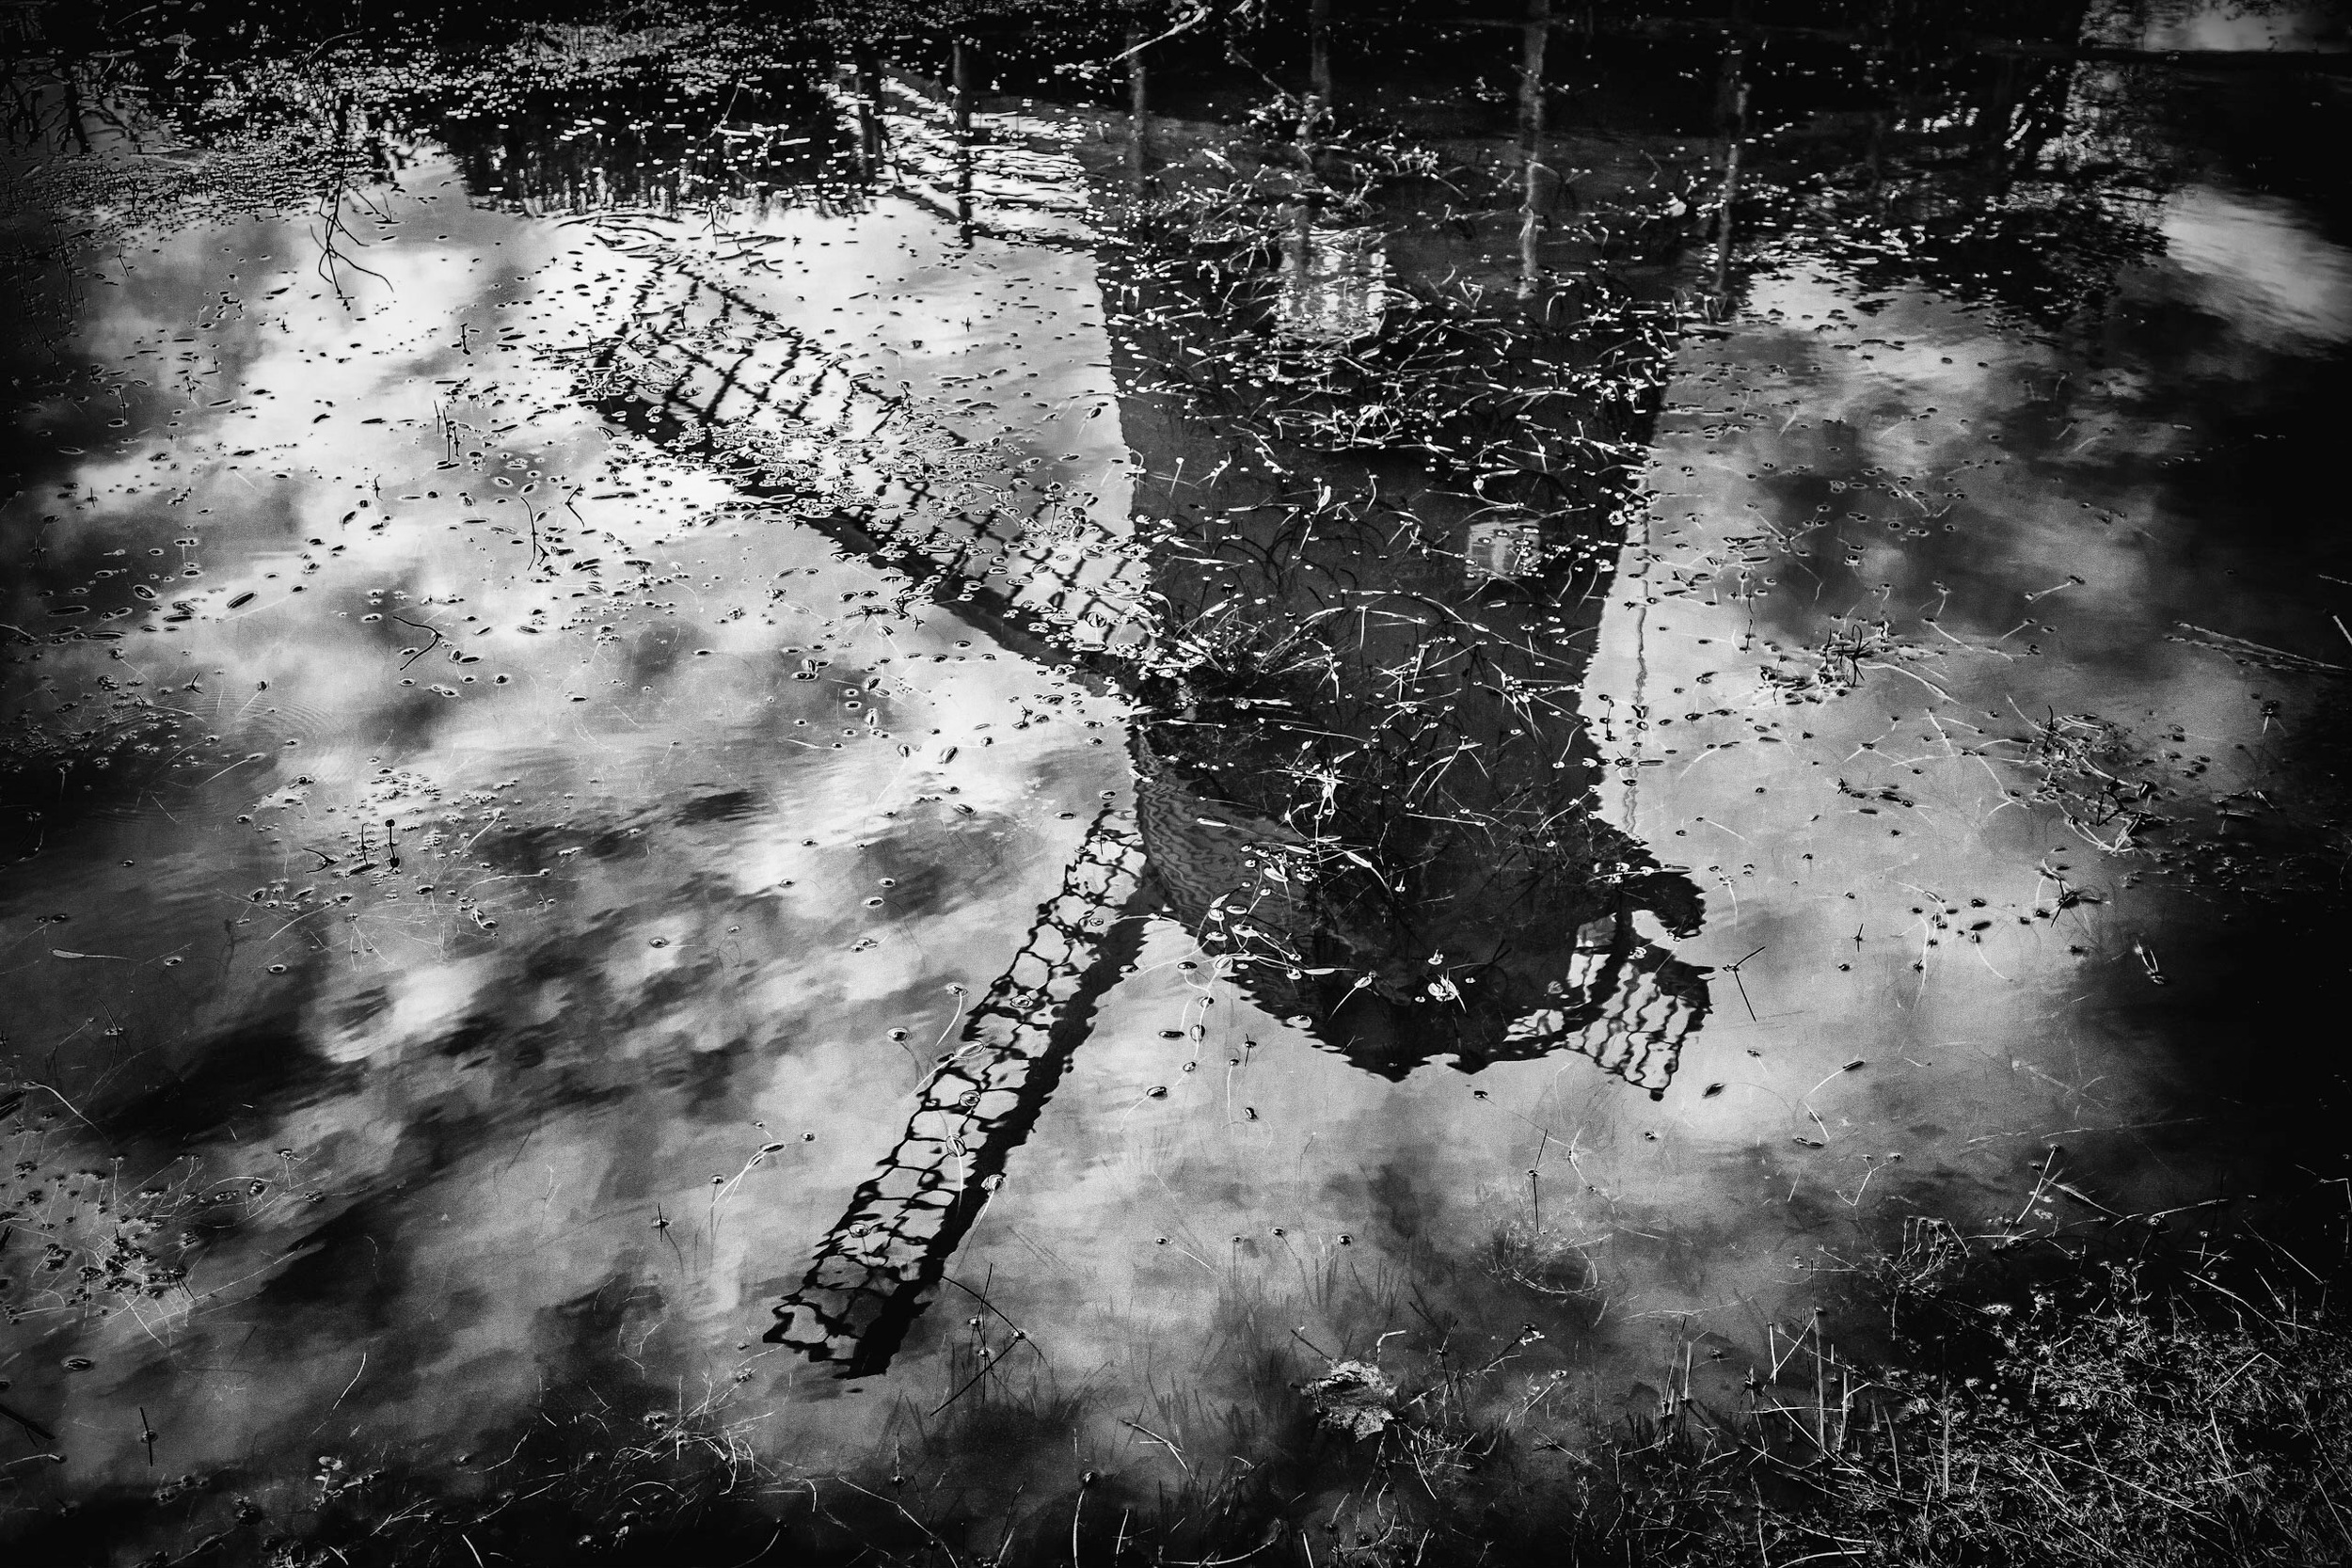 Picture of the reflection of a windmill, Bursledon, by Hampshire Photographer Rick McEvoy